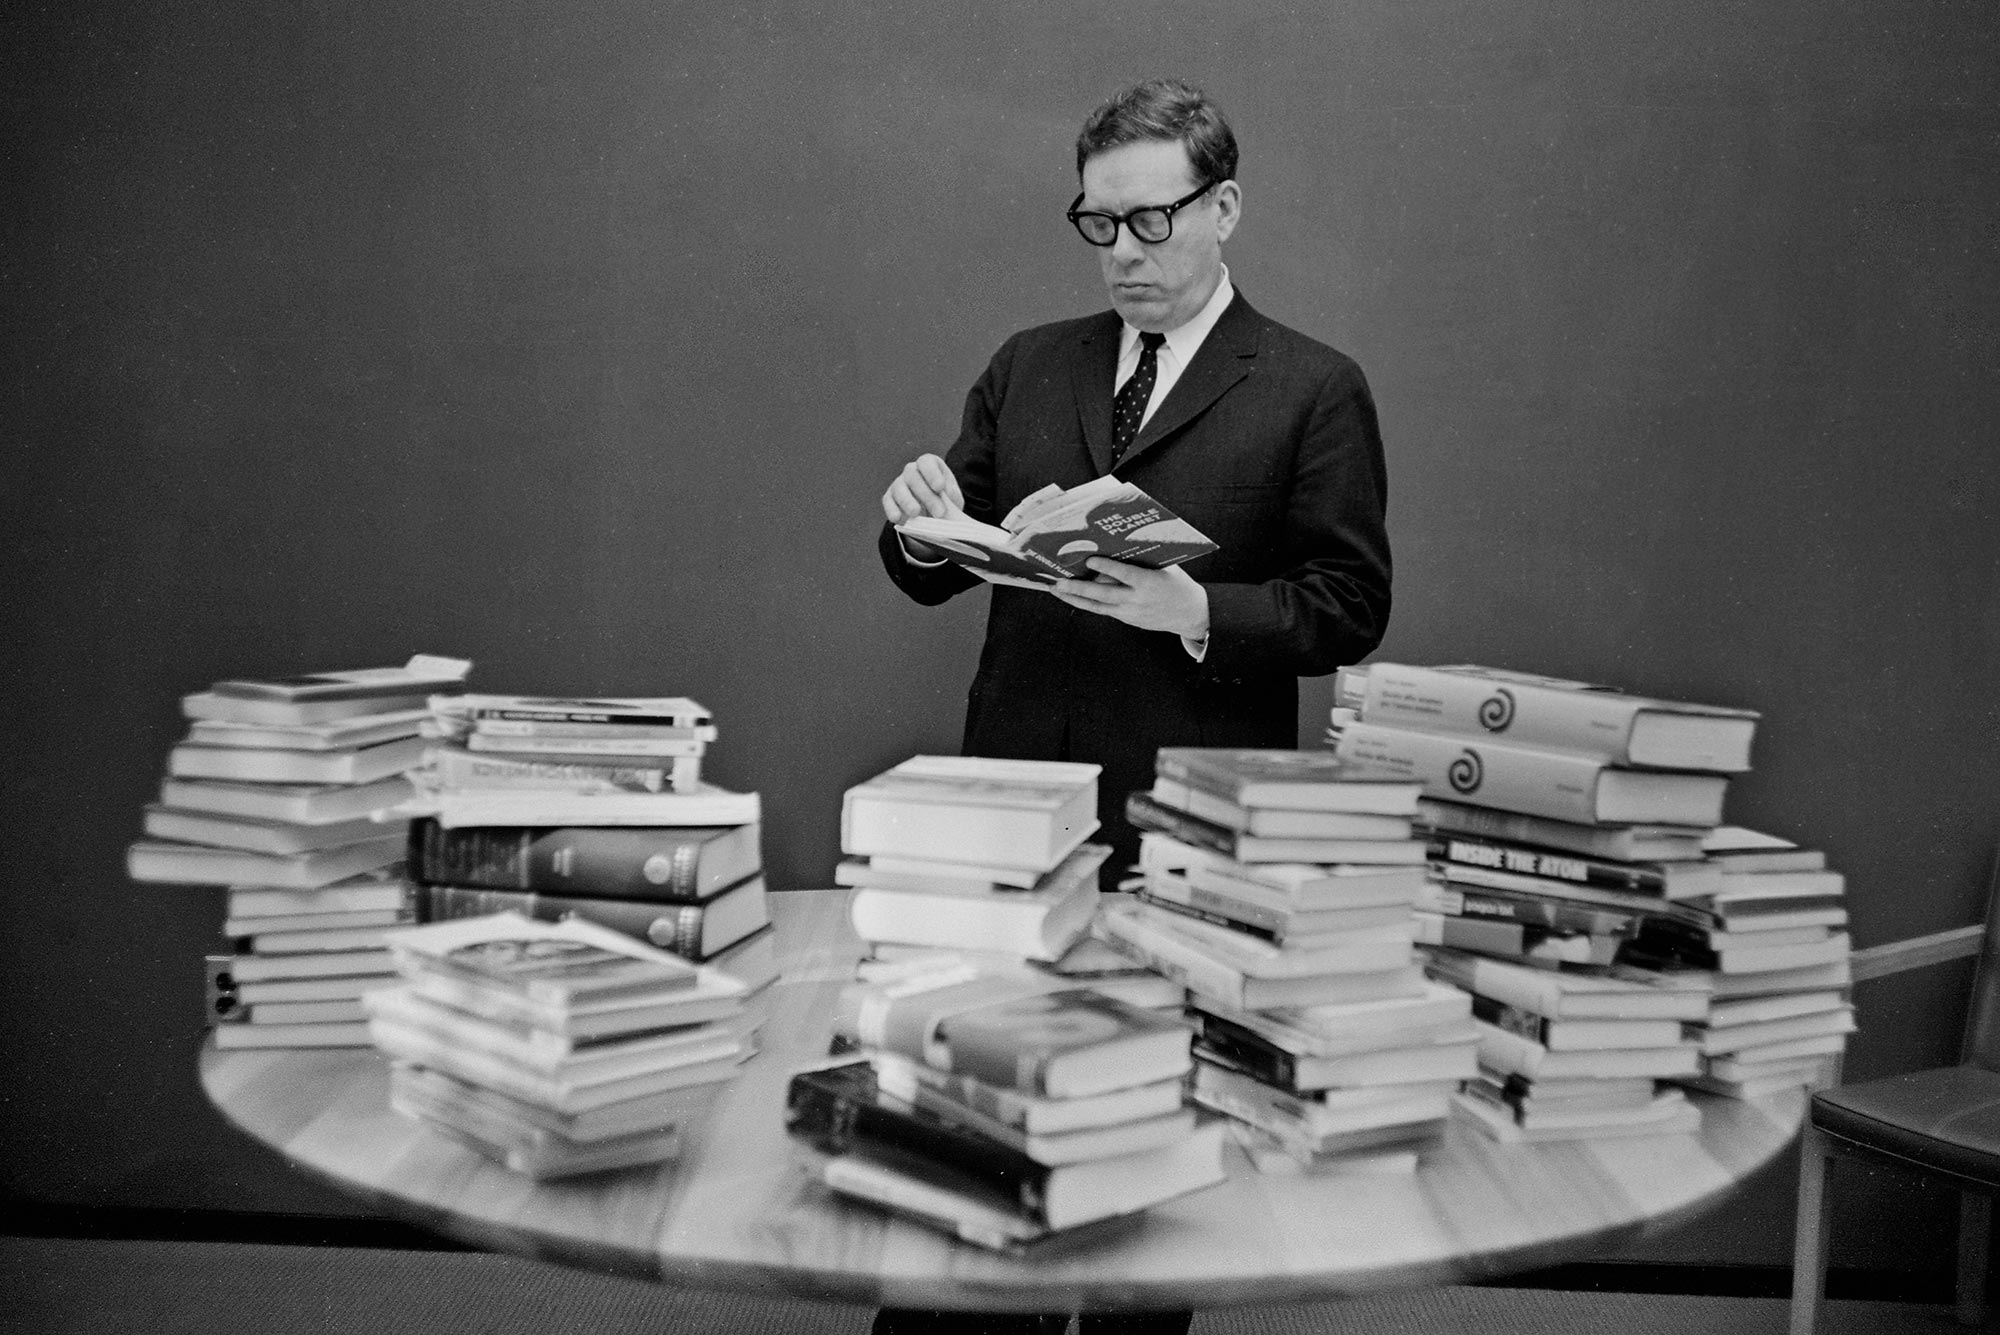 A black and white photo of author Isaac Asimov with 80 books at a Mugar Library event comemmorating the publishing of his 80th book in 1967. The table in front of him is piled high with books; he flips through one, wearing dark thick-rimmed glasses and a suit.